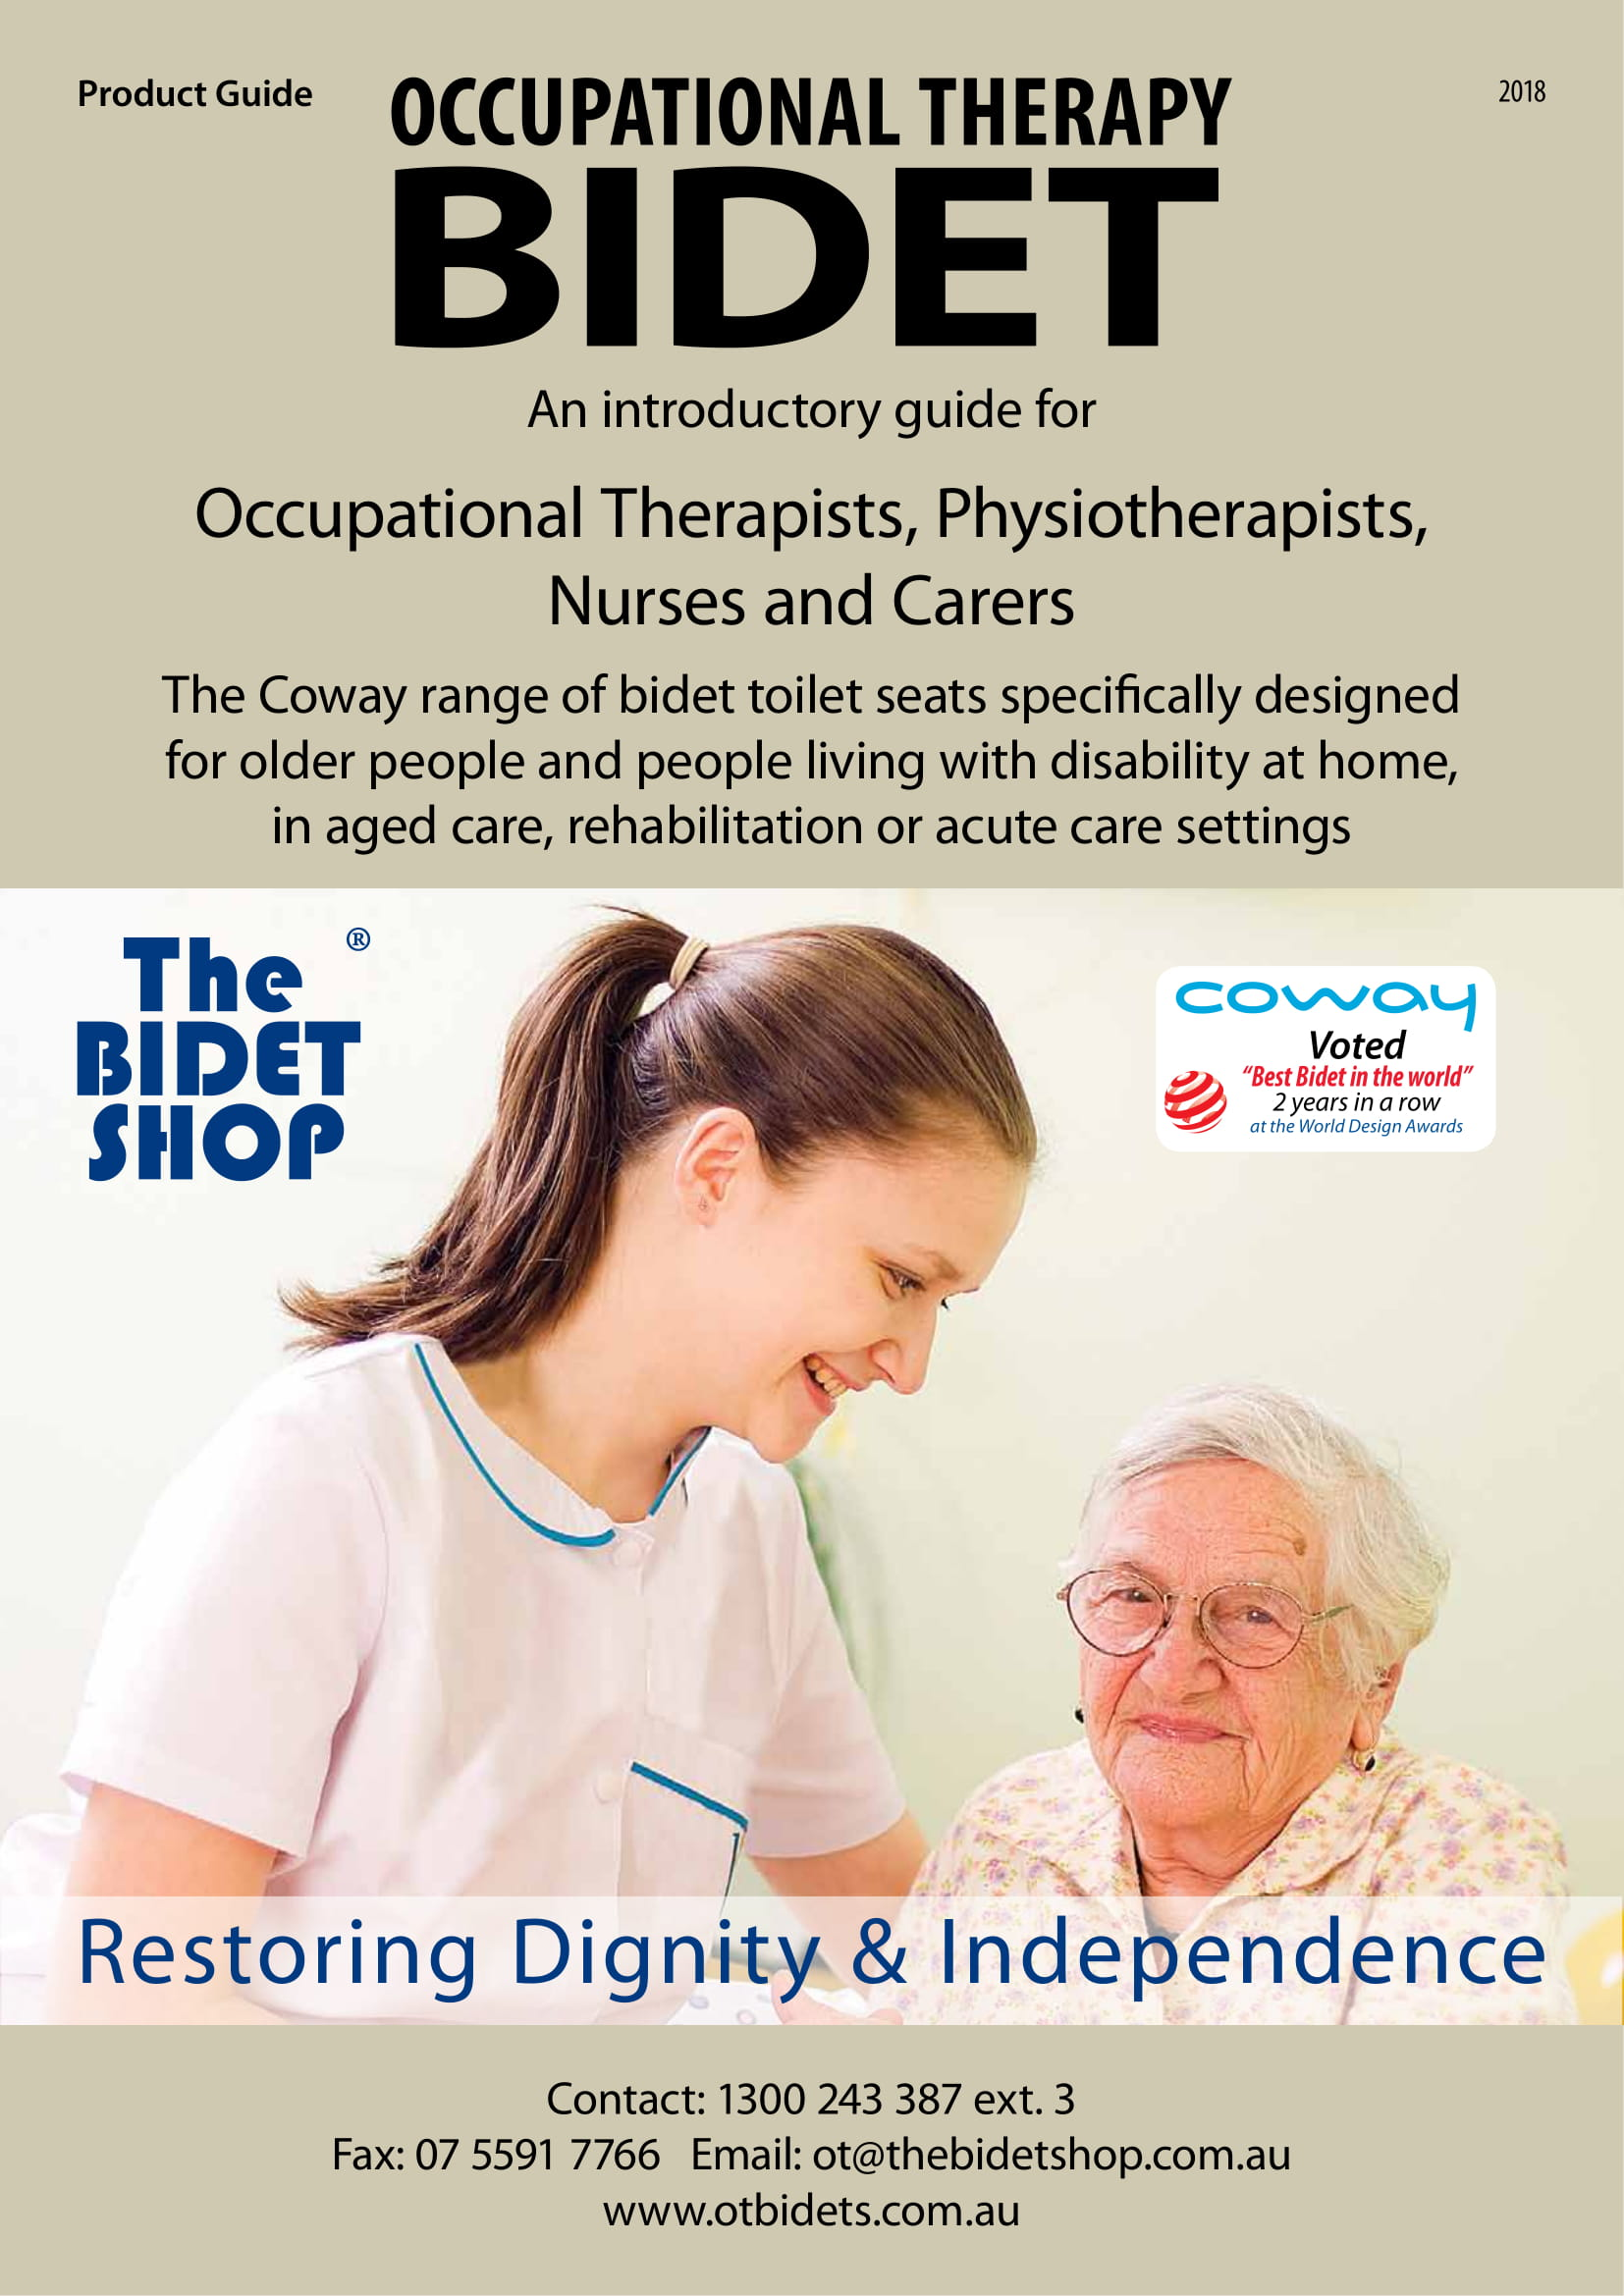 03-occuptional-therapy-aus-801-01.jpg